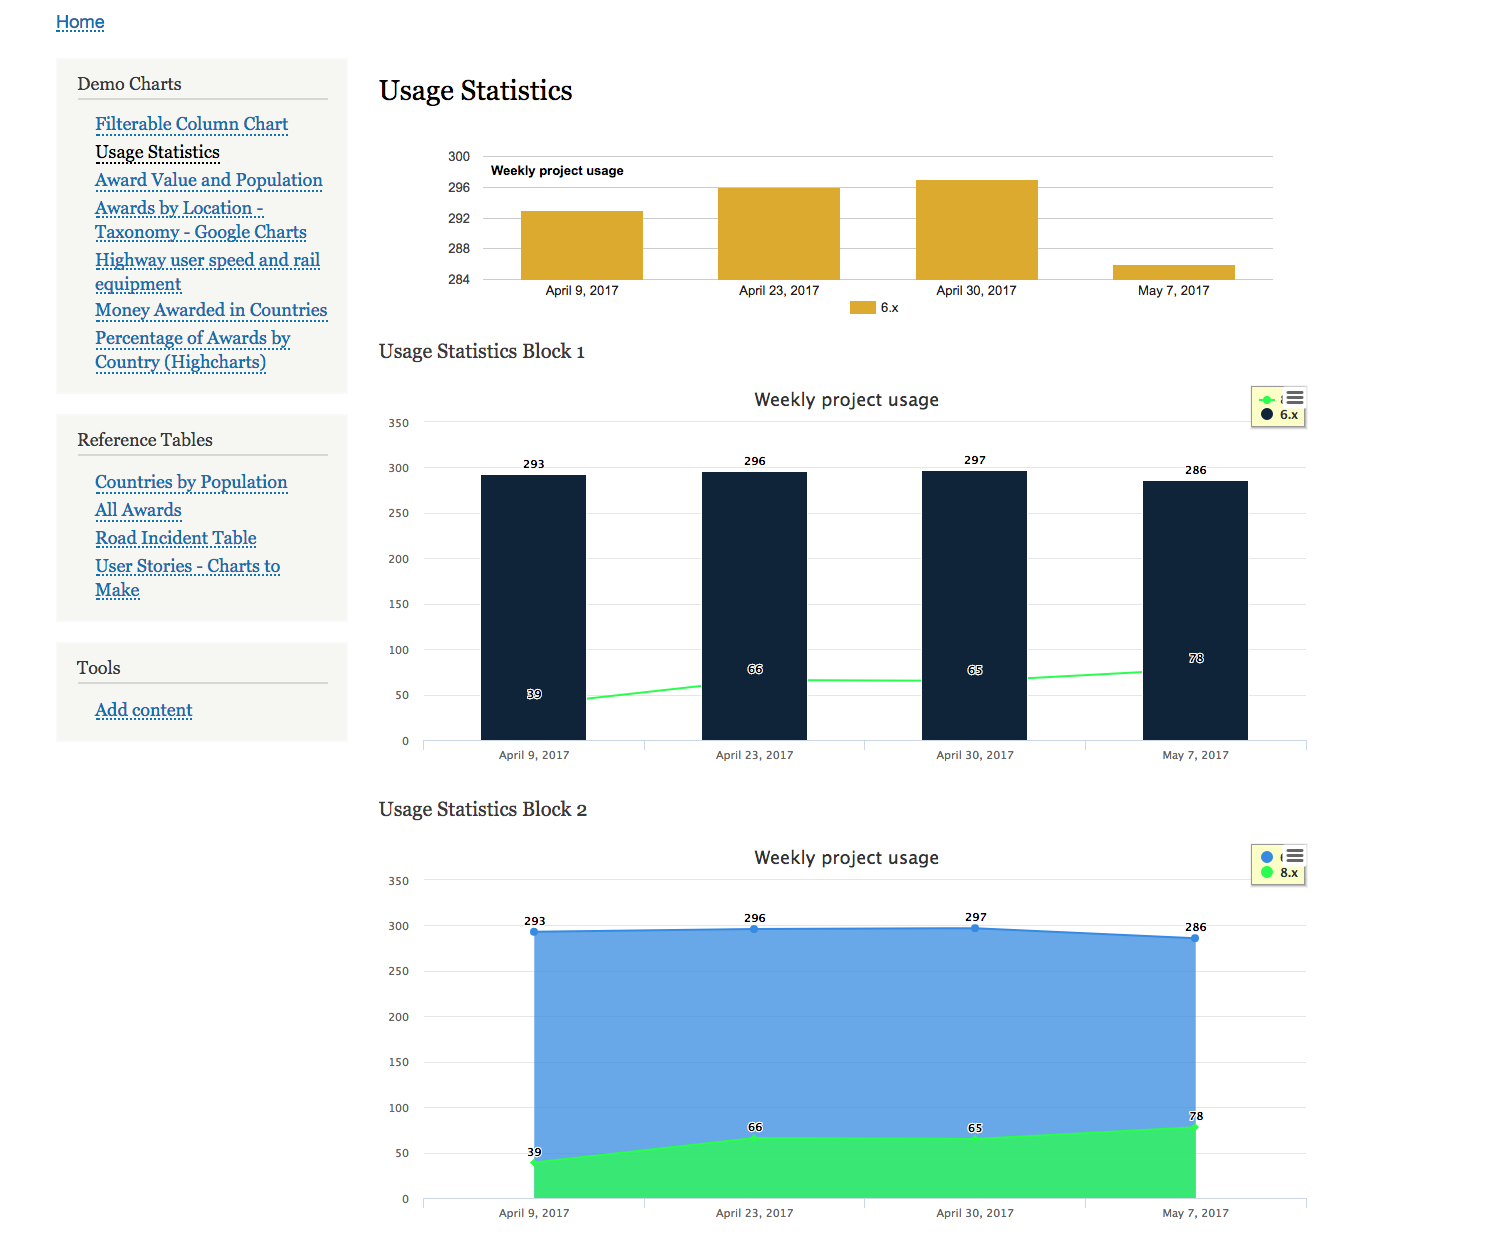 Undefined index exporting in Drupal\charts_highcharts\Plugin